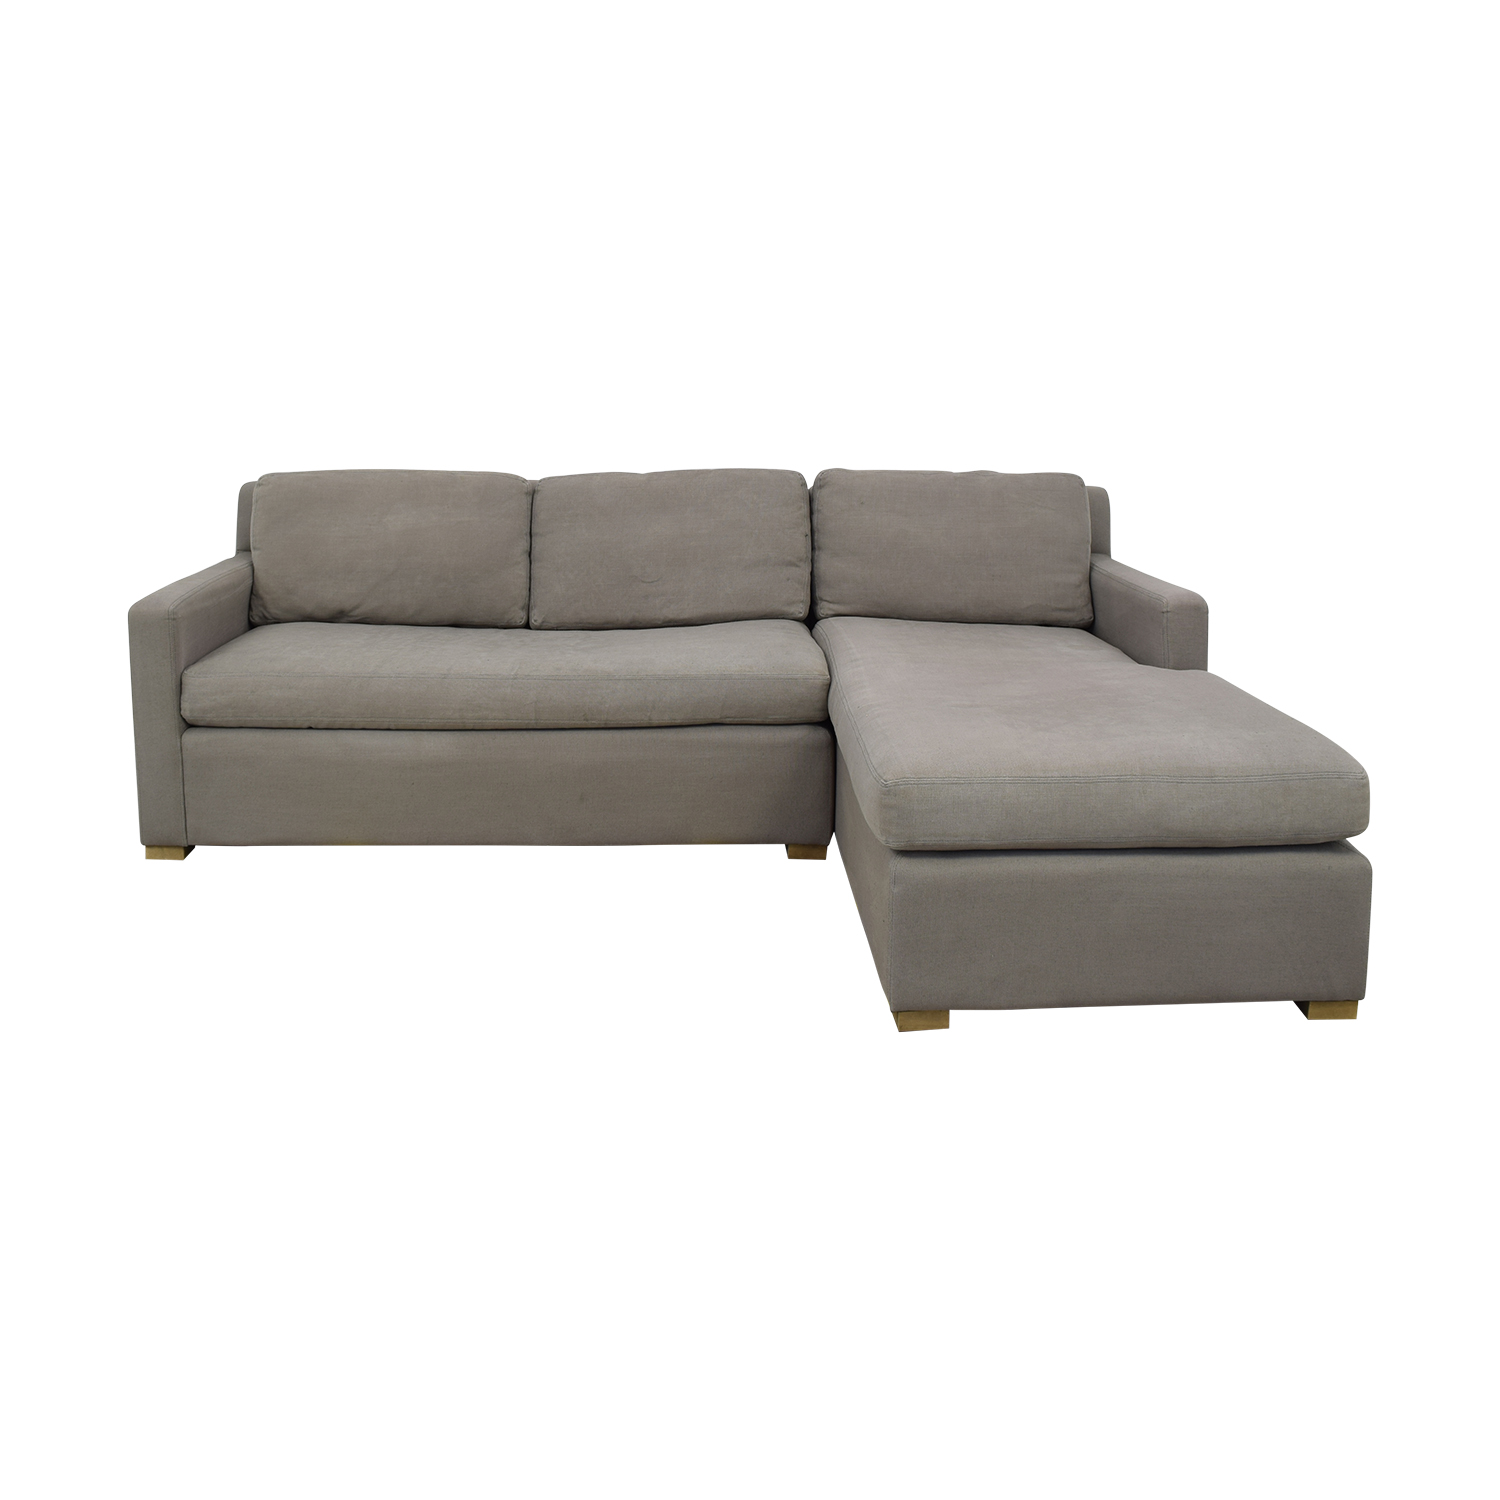 Restoration Hardware Restoration Hardware Belgian Track Arm Right-Arm Chaise Sectional Sofas